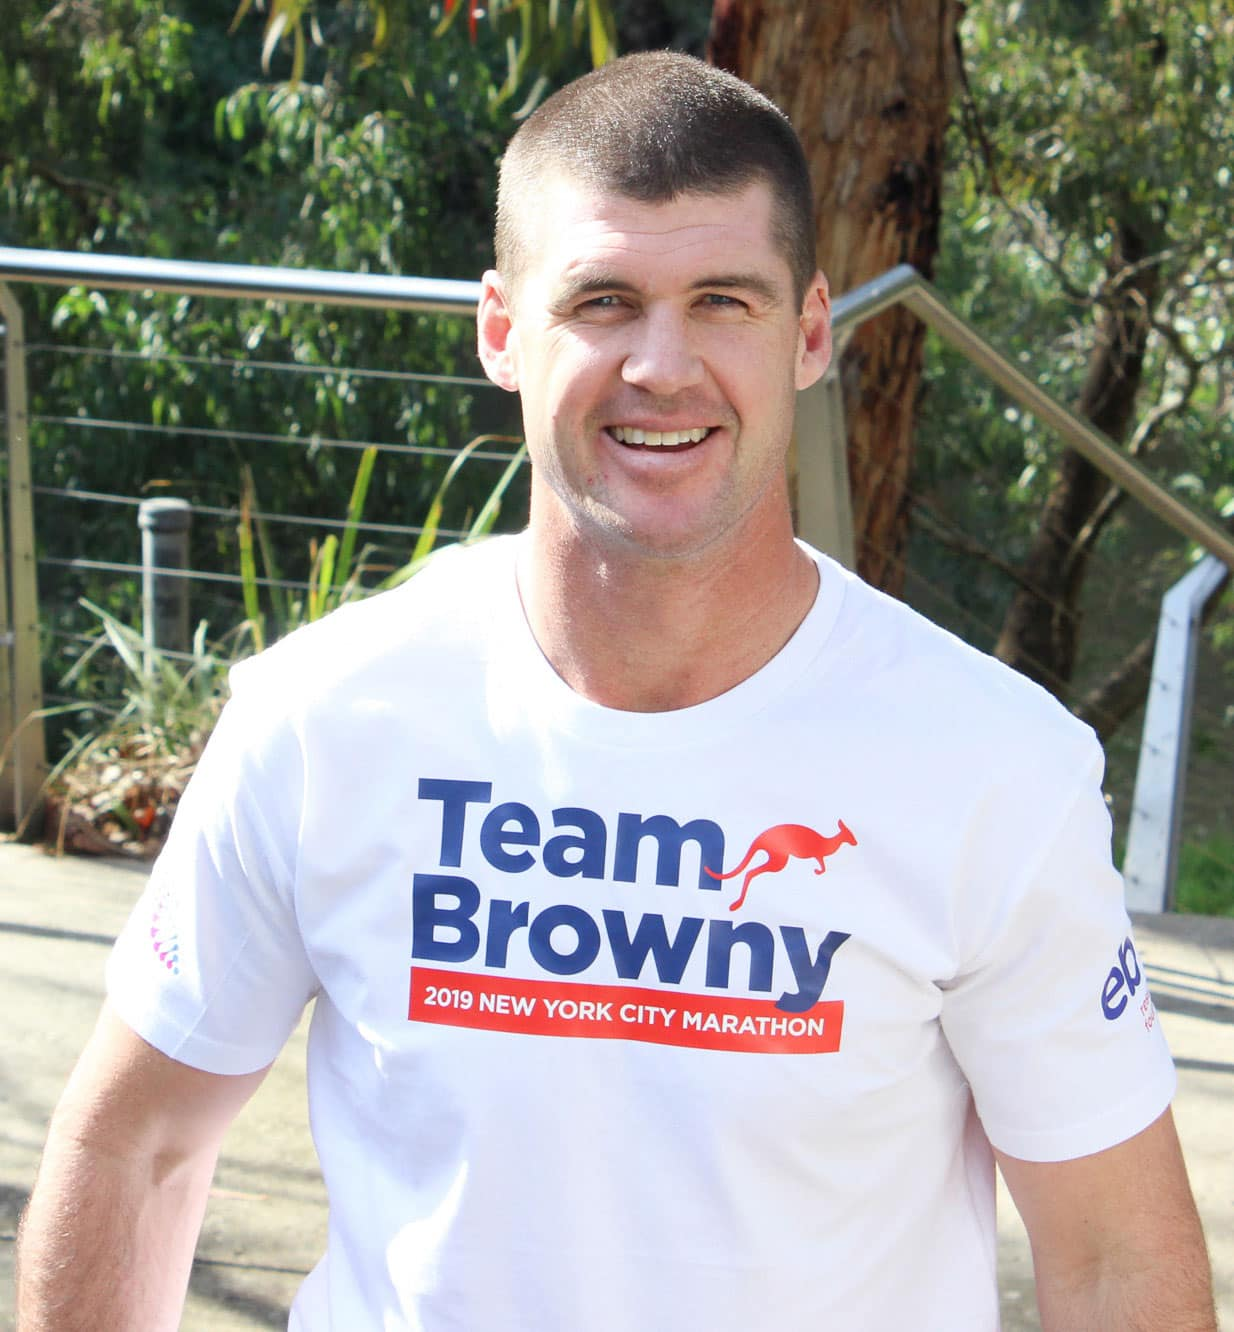 browny new york marathon-